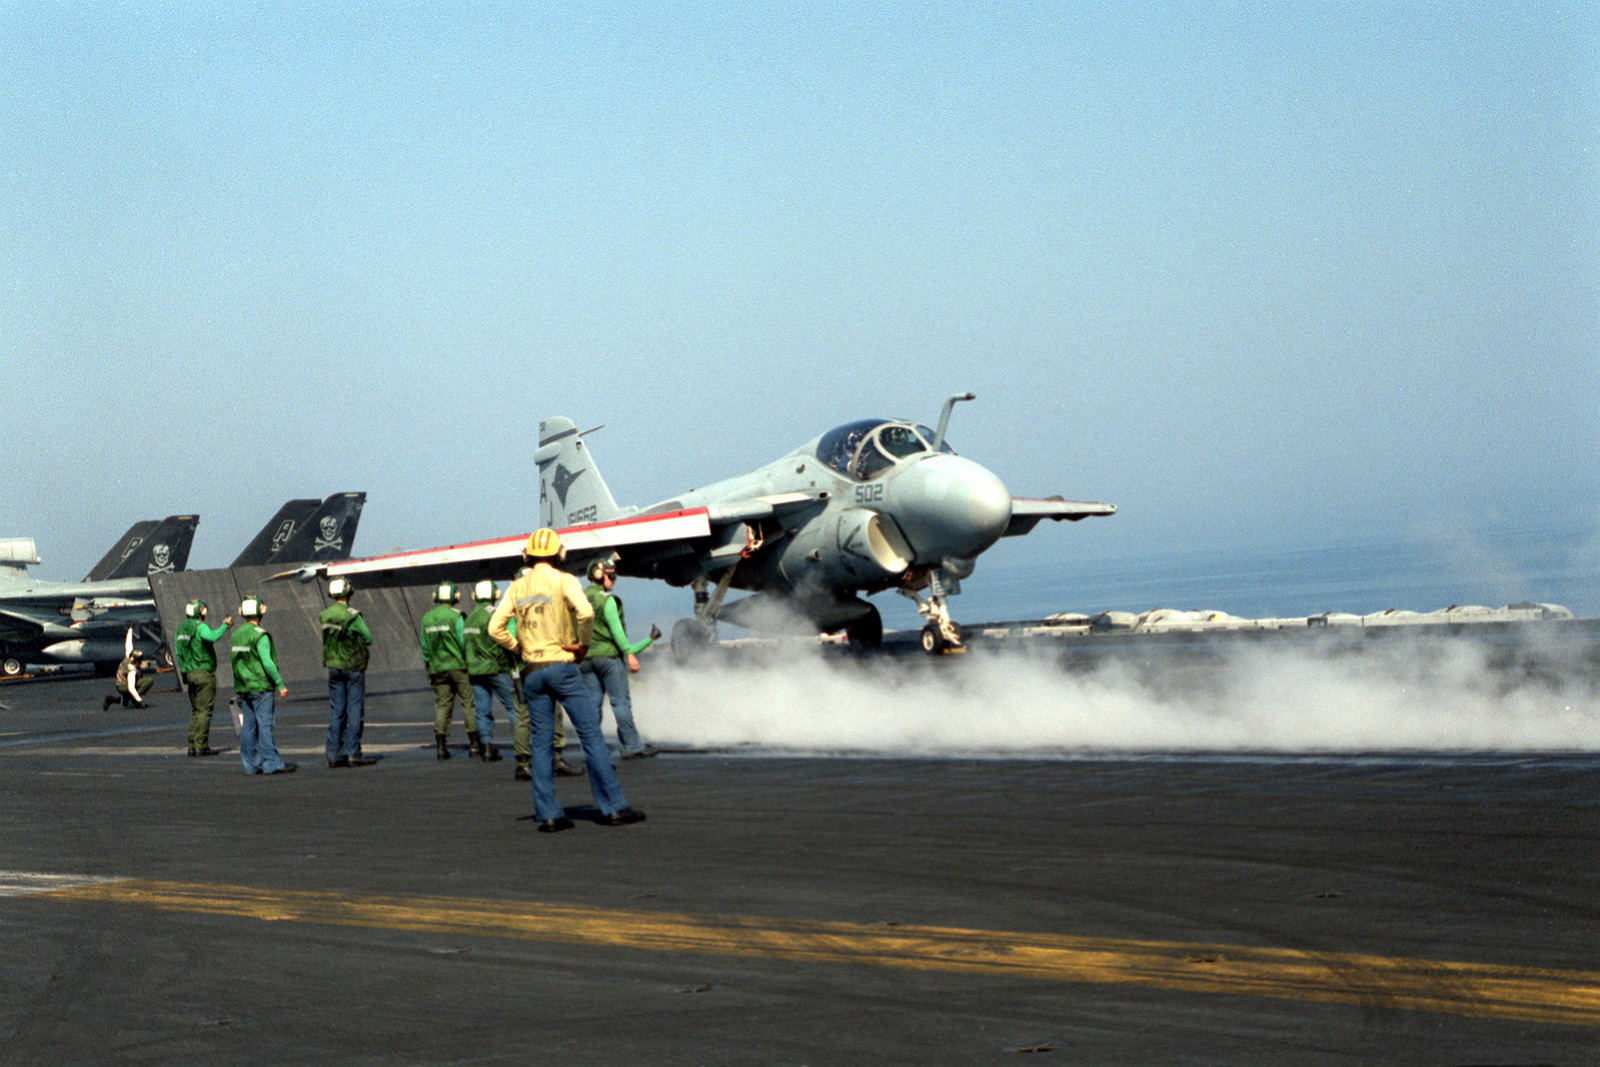 A catapult crew on the nuclear-powered aircraft carrier USS THEODORE ROOSEVELT (CVN-71) prepares to launch an Attack Squadron 36 (VA-36) A-6E Intruder aircraft. The ROOSEVELT is operating in the Adriatic in support of Operation Deny Flight